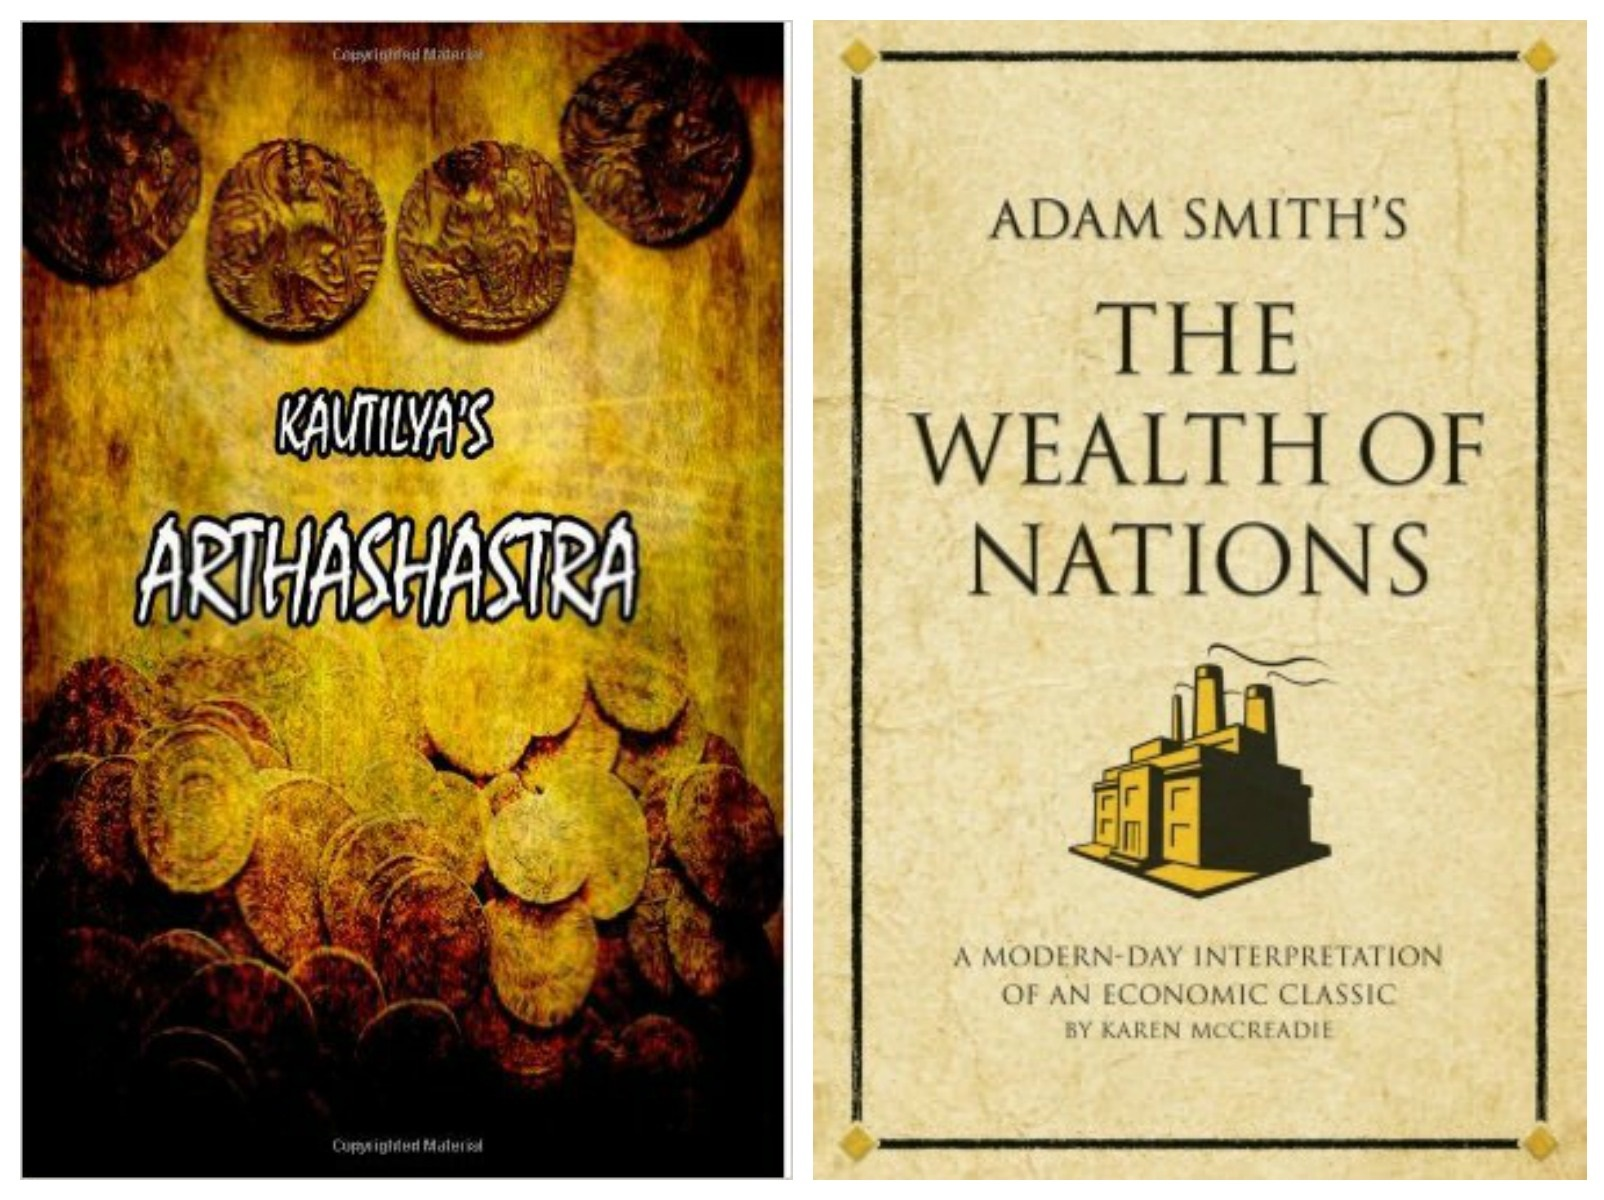 Kautilya and Adam Smith